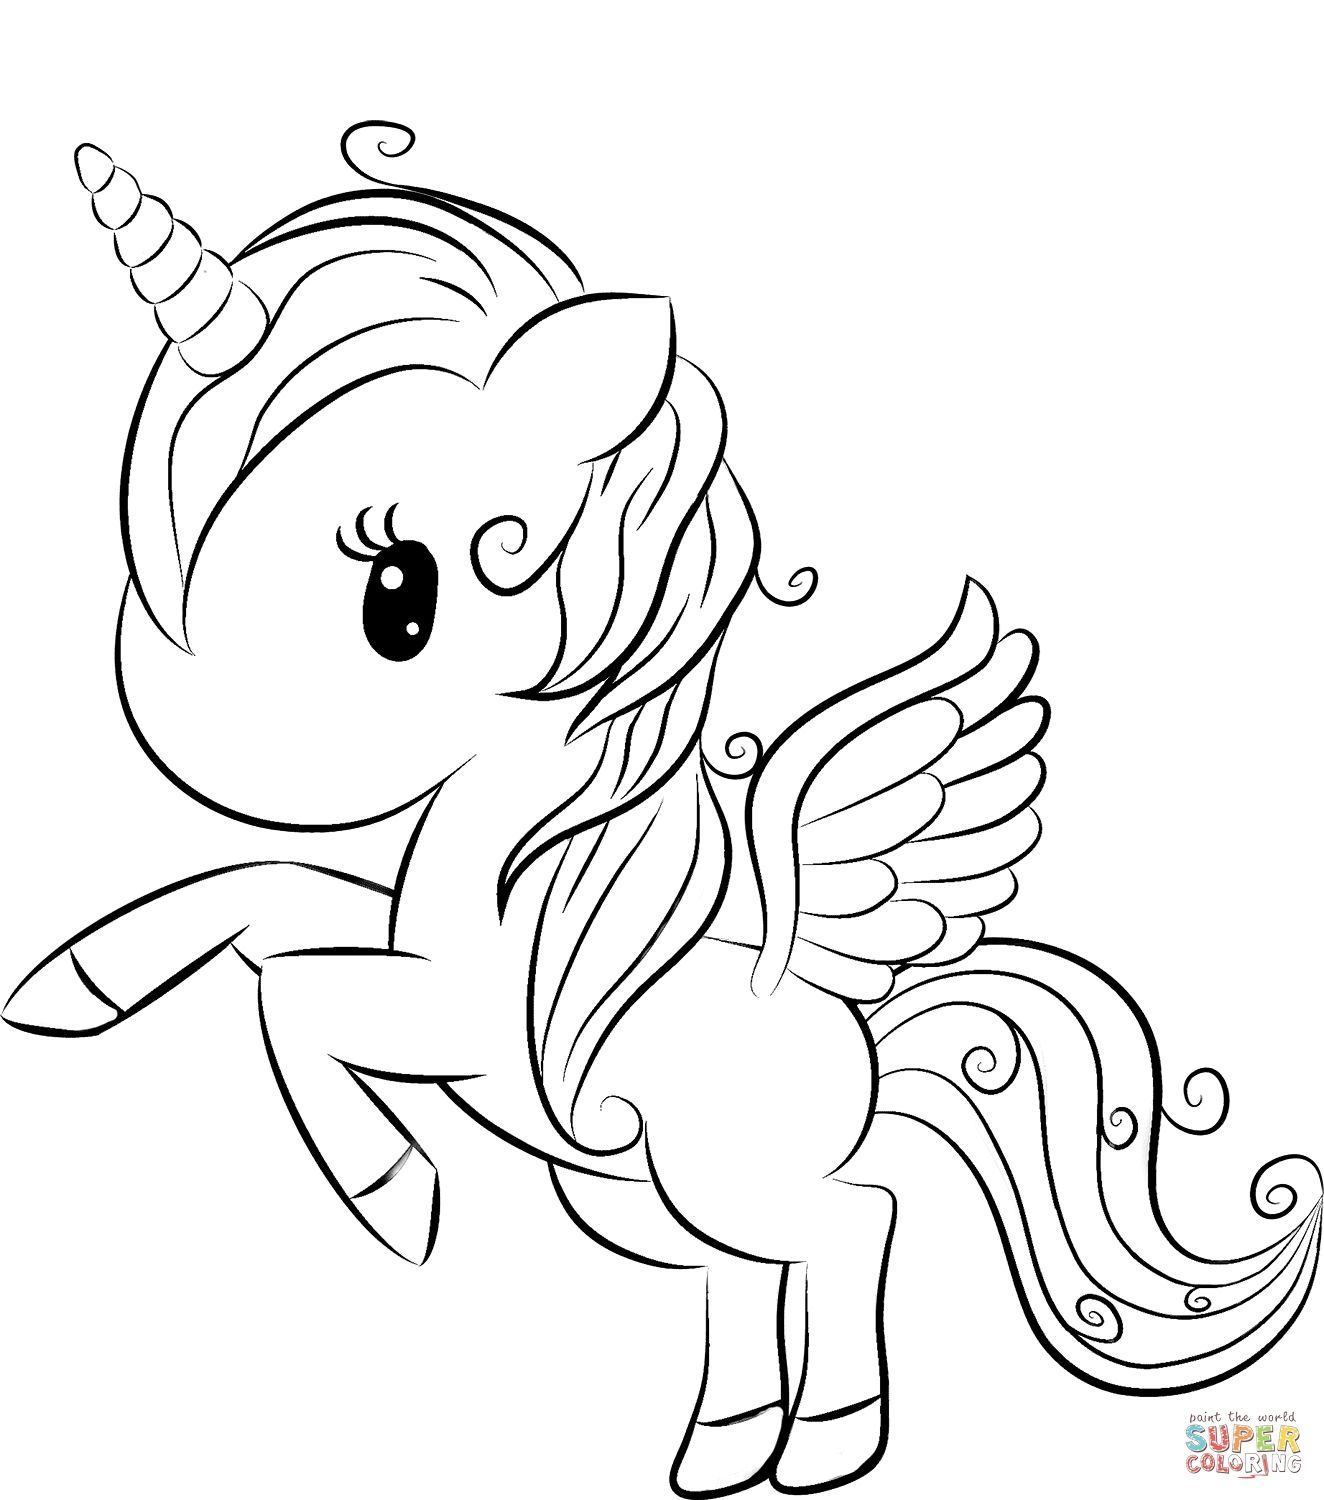 Unicorn Printable Coloring Pages Cute Unicorn Printable Coloring Pages Flying Unicorn Print Unicorn Coloring Pages Cute Coloring Pages Mandala Coloring Books